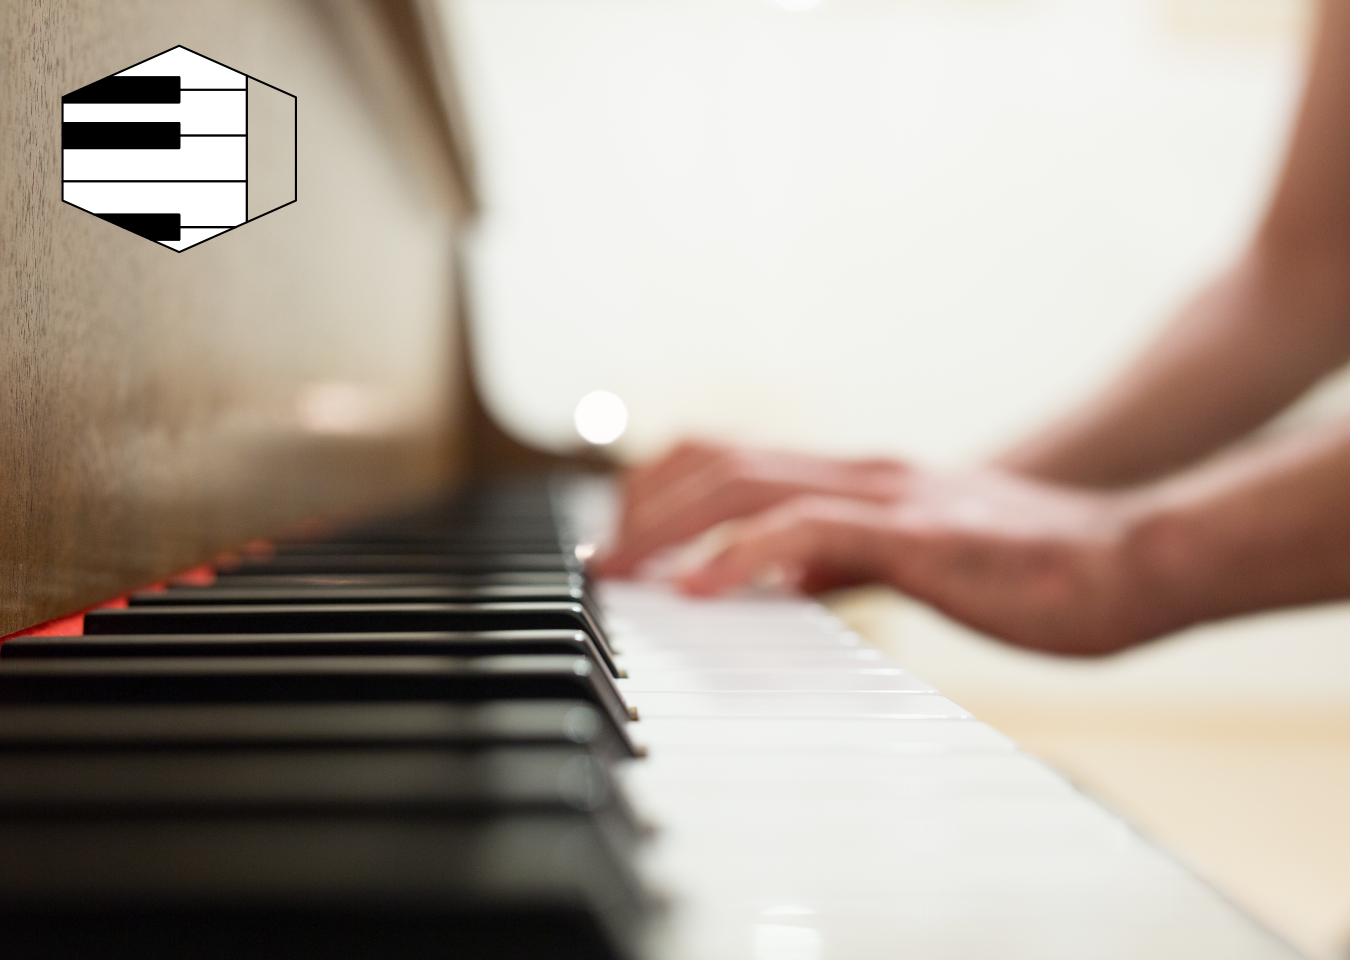 Piano Lessons - I give Classical Piano, Modern Pop and Improvisation lessons. With all my lessons, my goal is to give you what you need in this current season. Click the picture for more information and rates about my Piano Lessons.